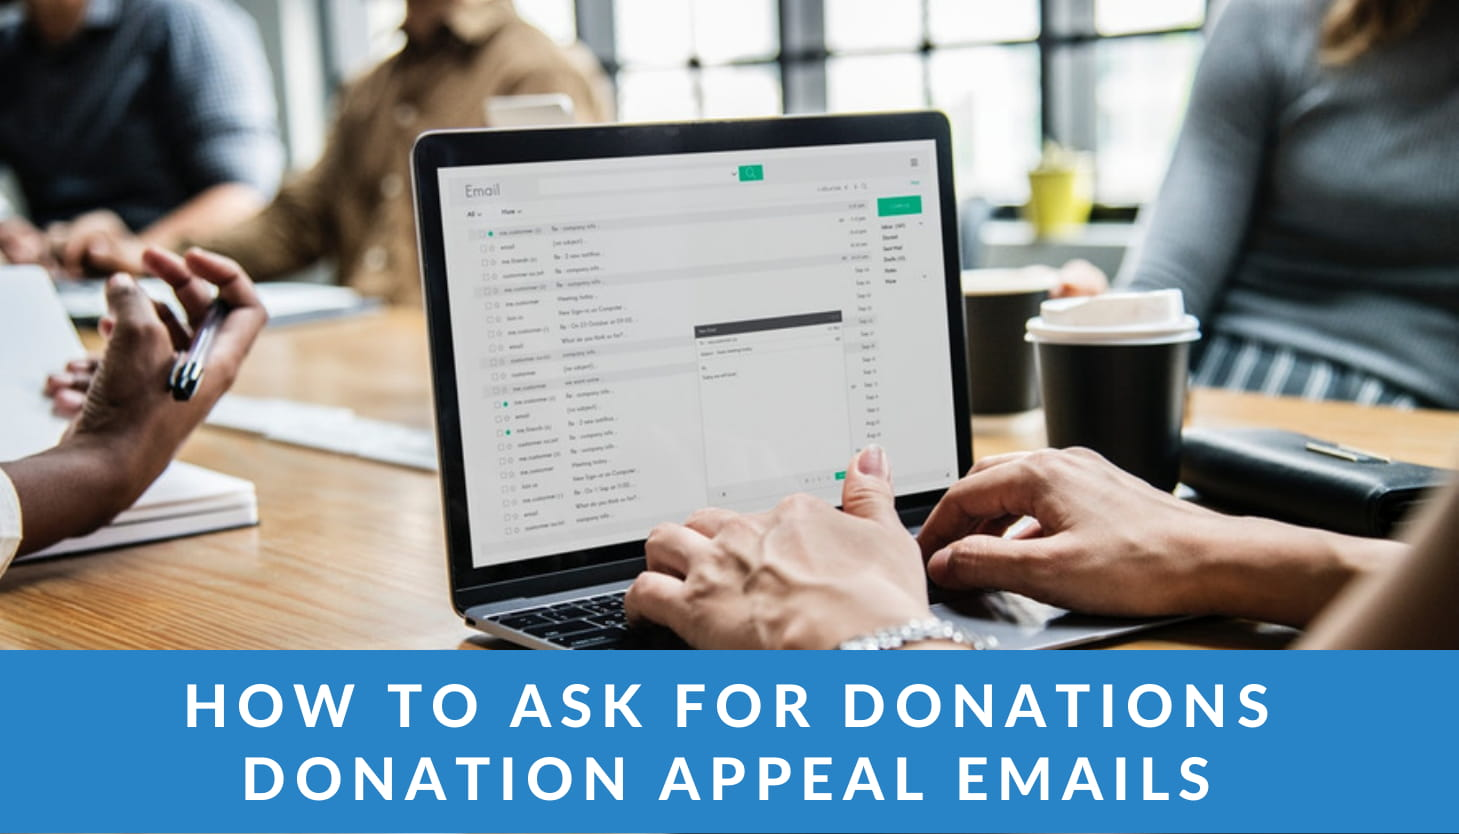 How to Ask for Donations: Donation Appeal Emails